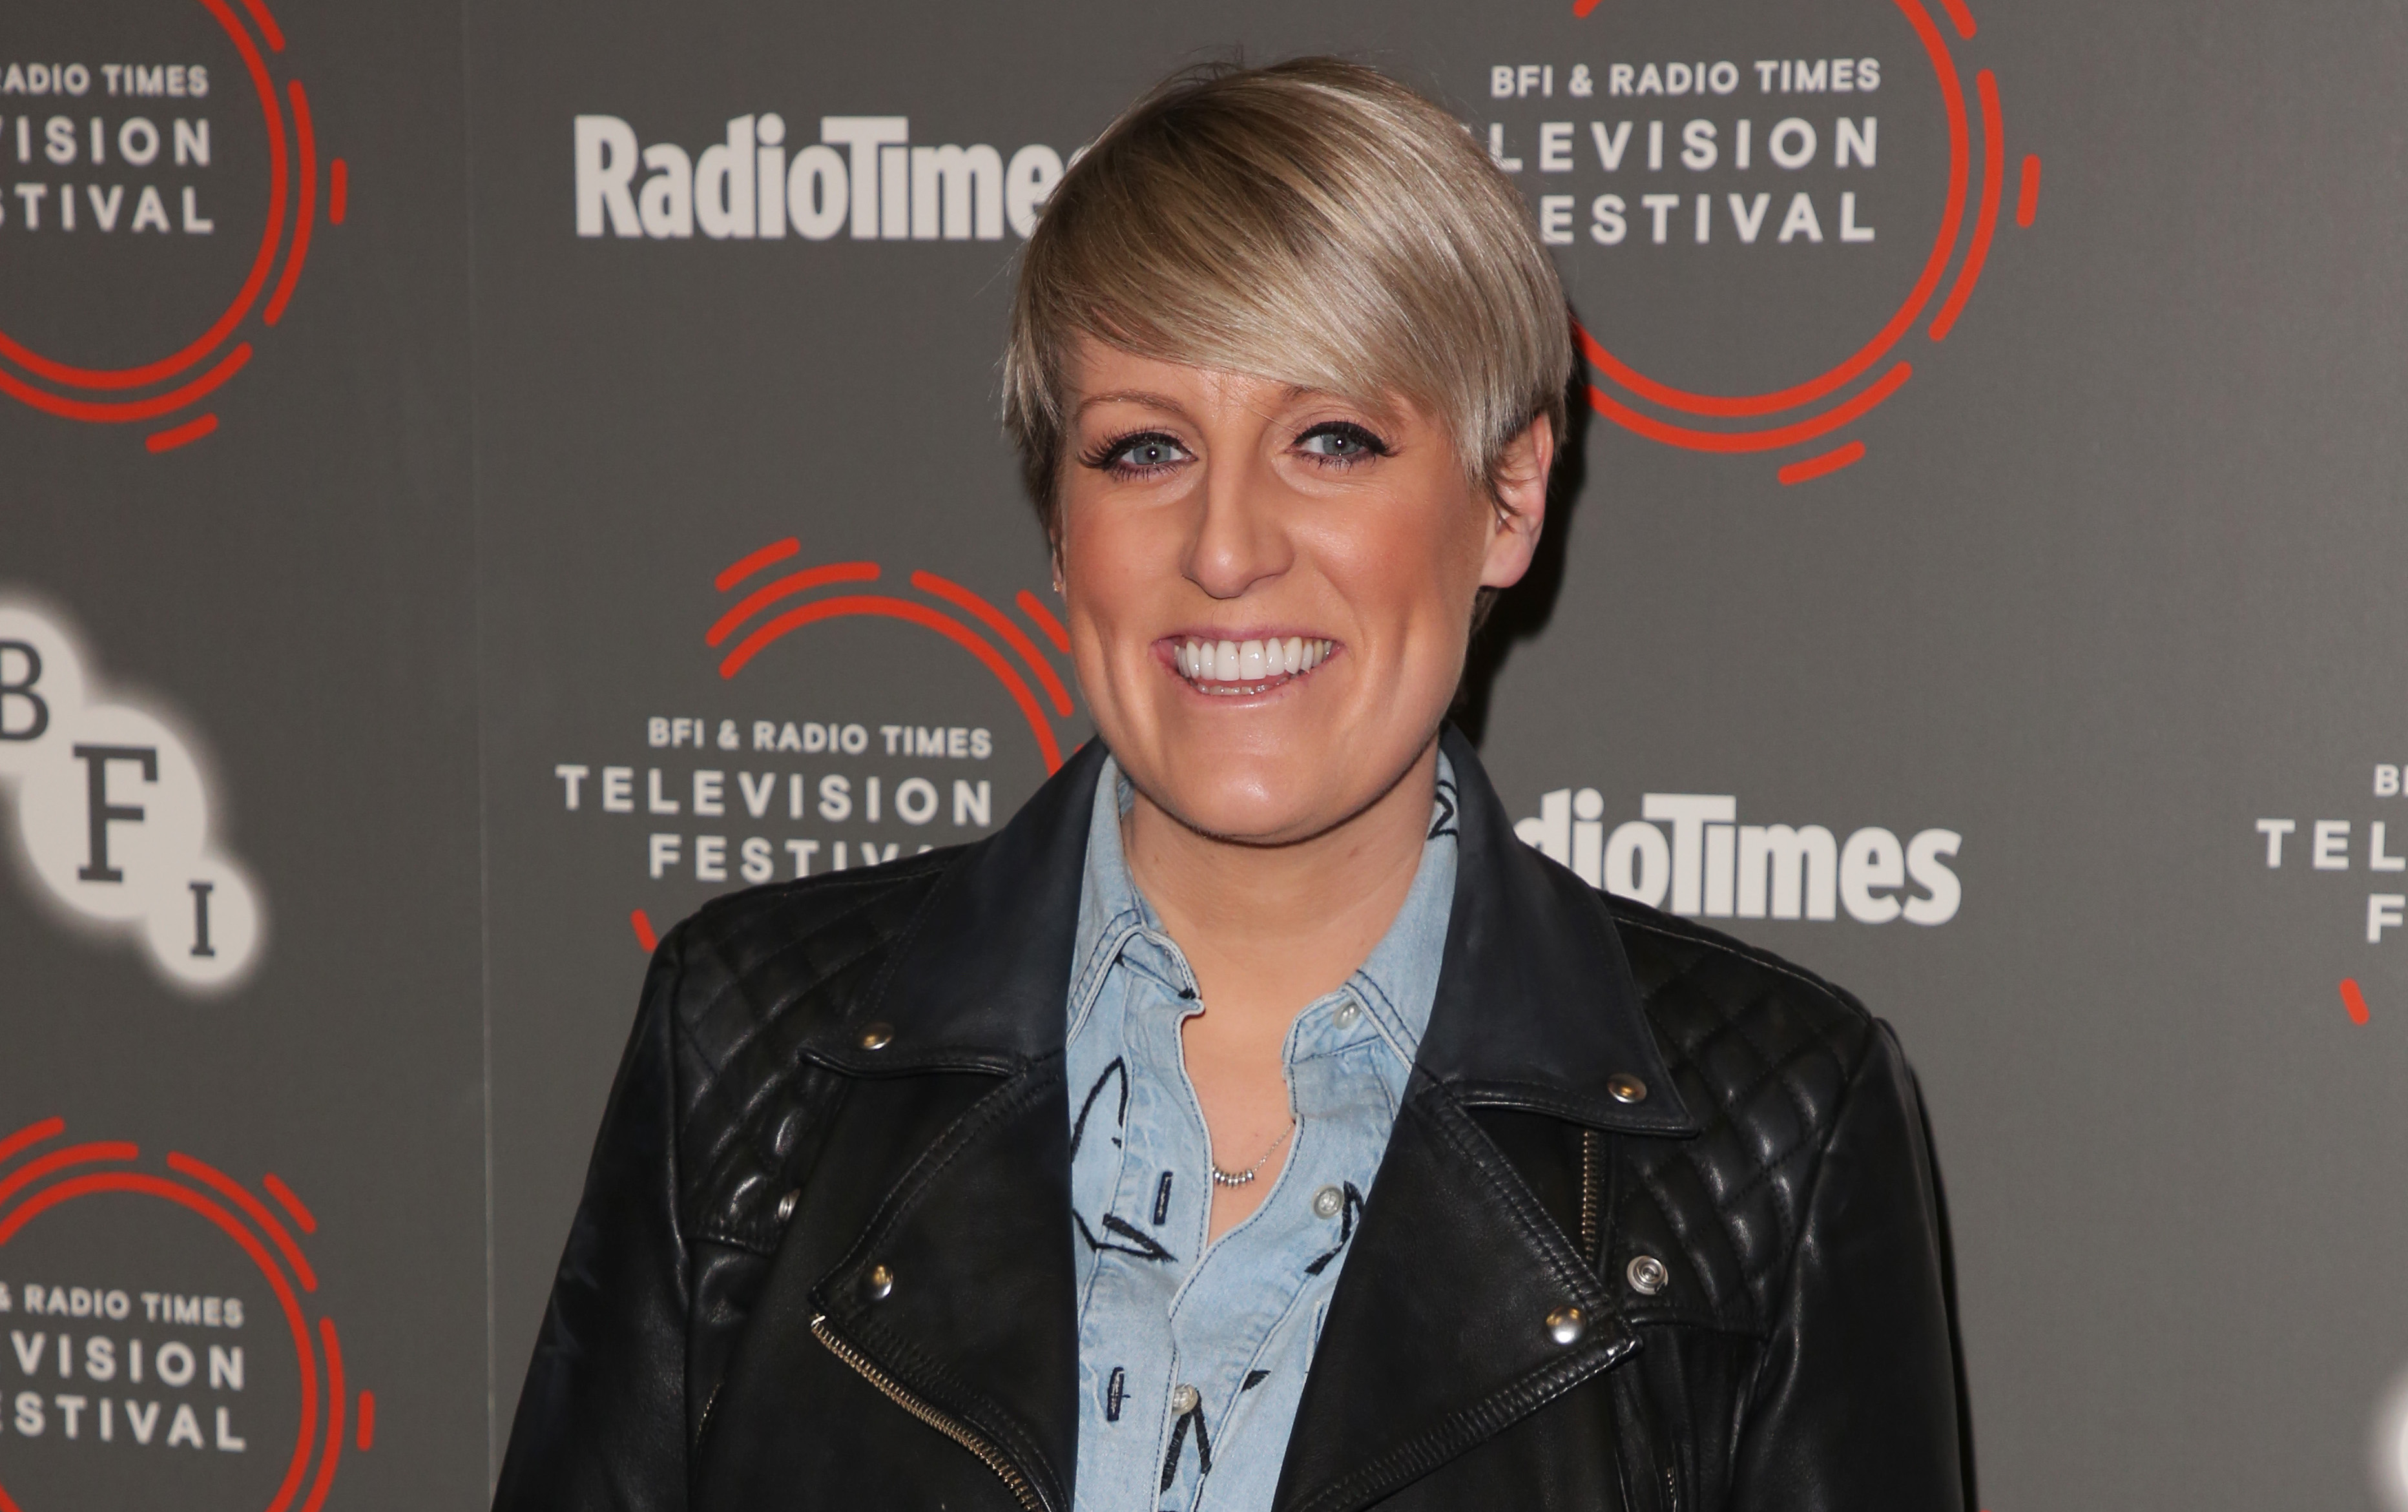 BBC Breakfast's Steph McGovern apologises for 'rude' remark